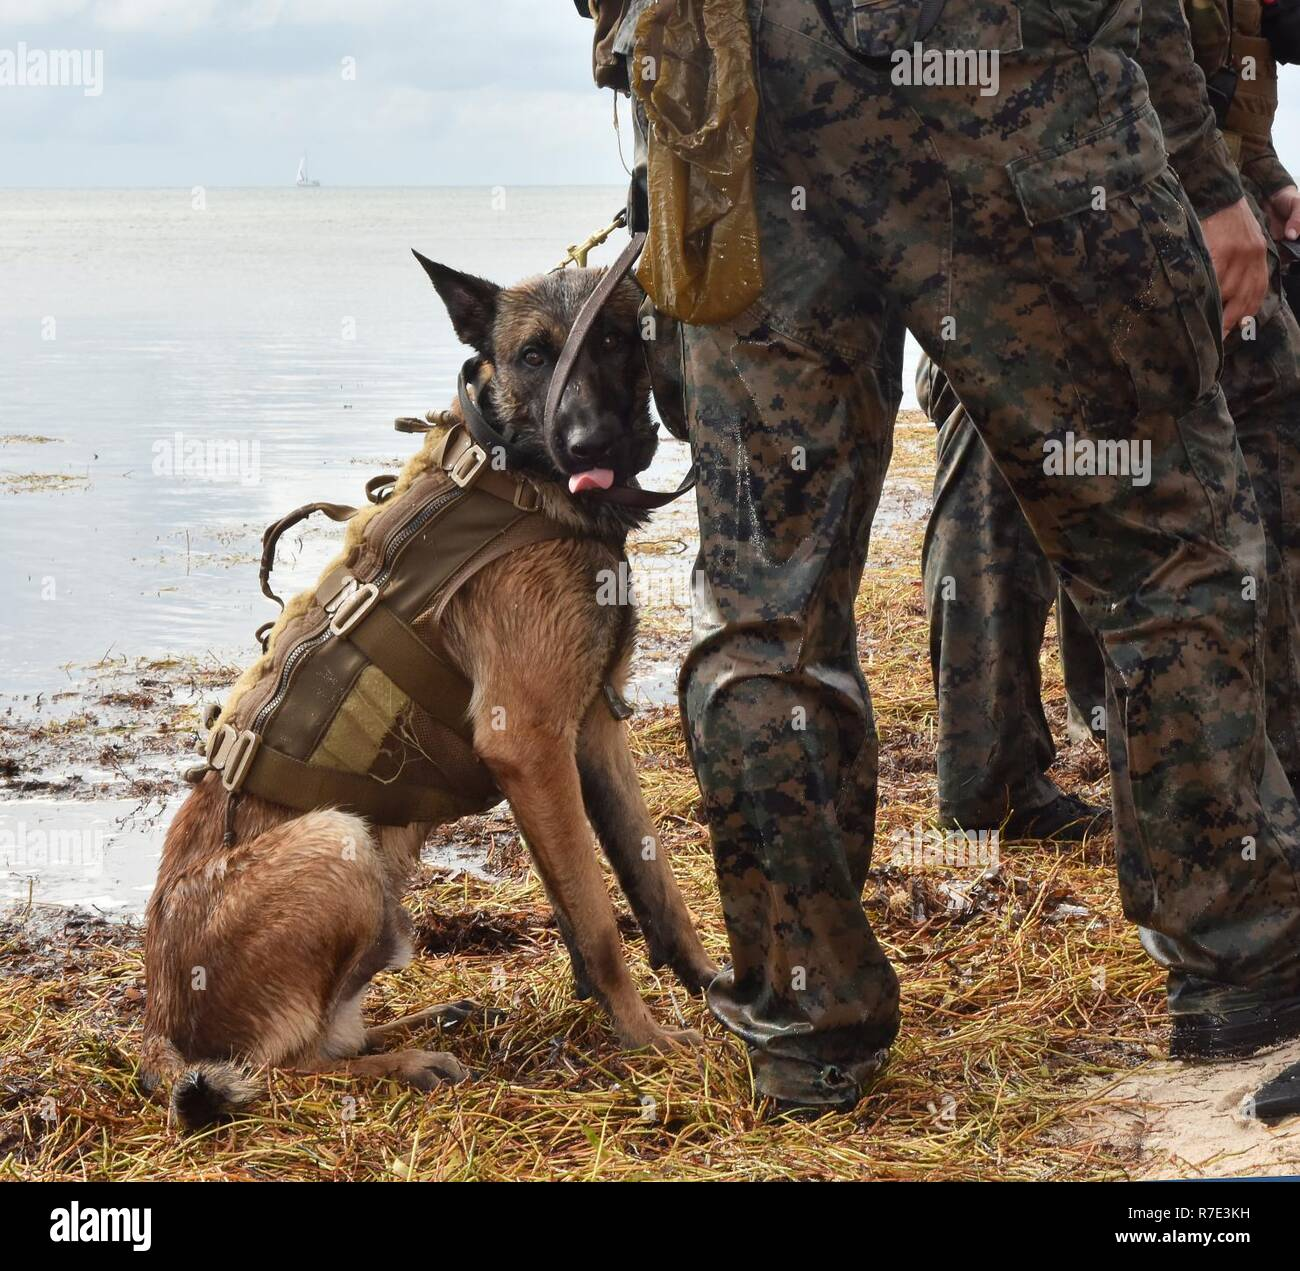 Navy Marines Marsoc K 9 Canine Special Forces Key West